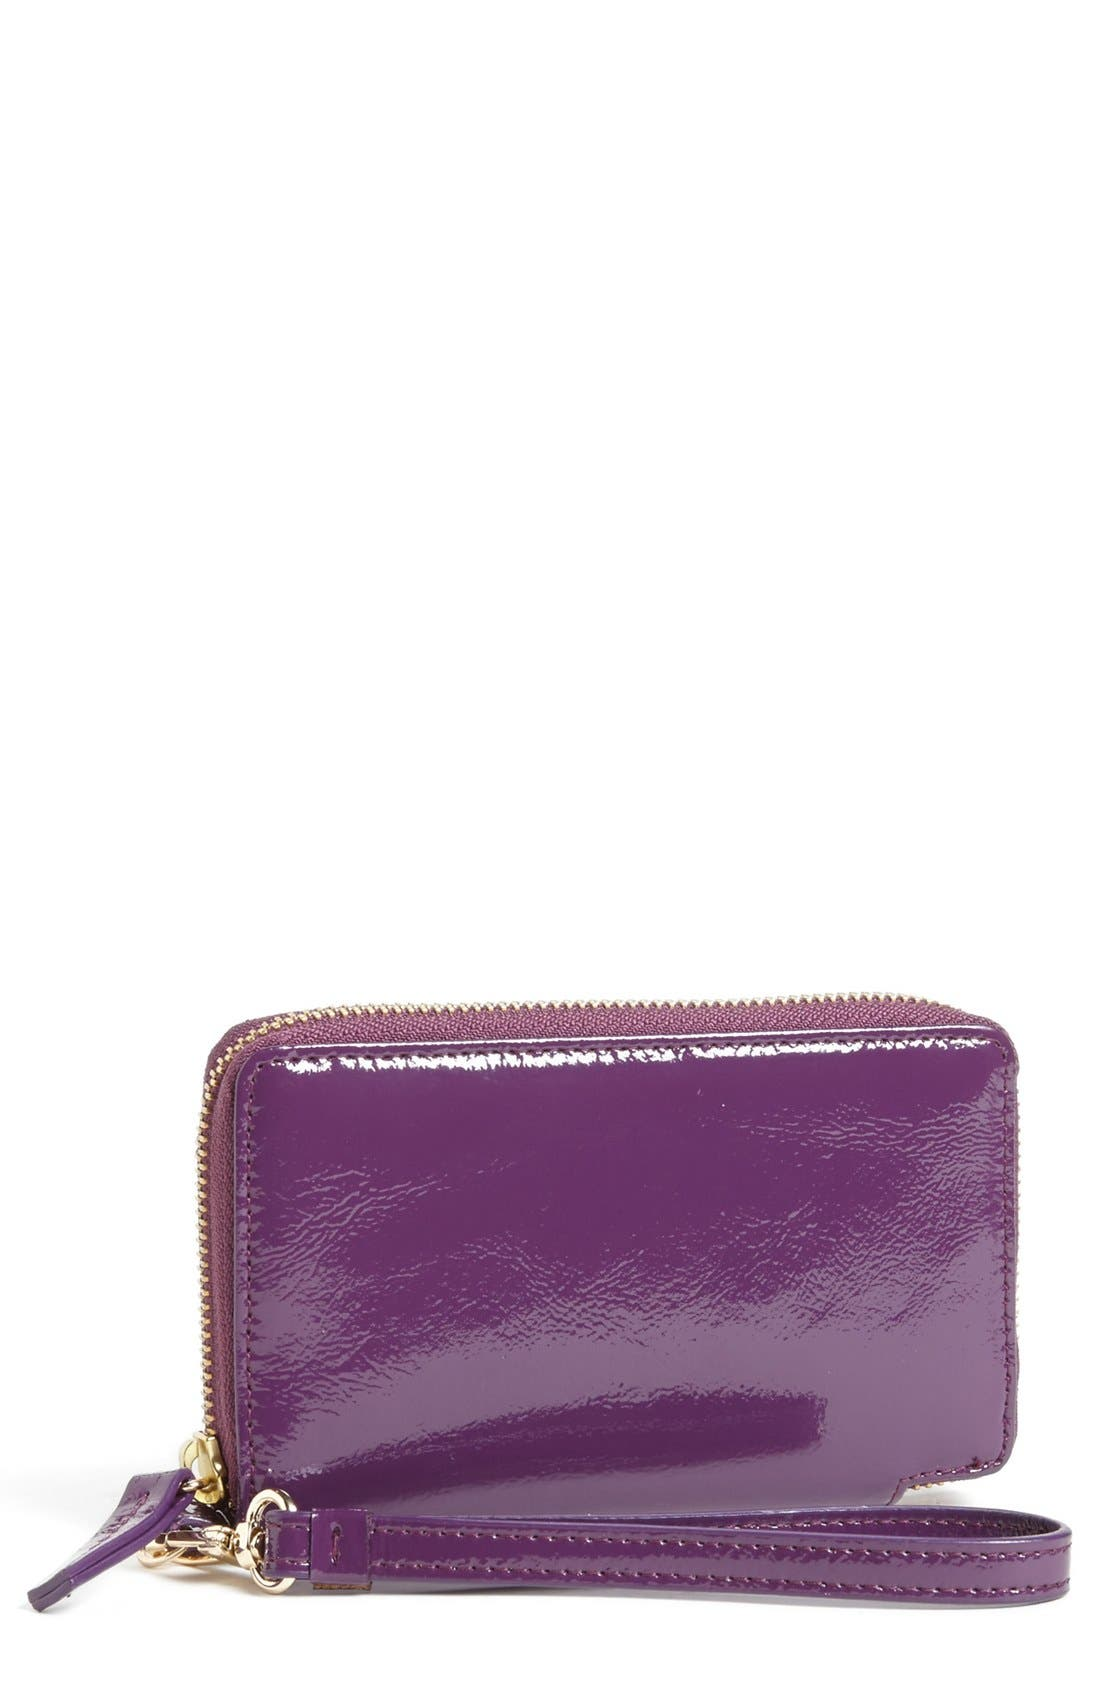 Alternate Image 1 Selected - Halogen® 'Cassie' Crinkle Patent Leather Phone Wallet